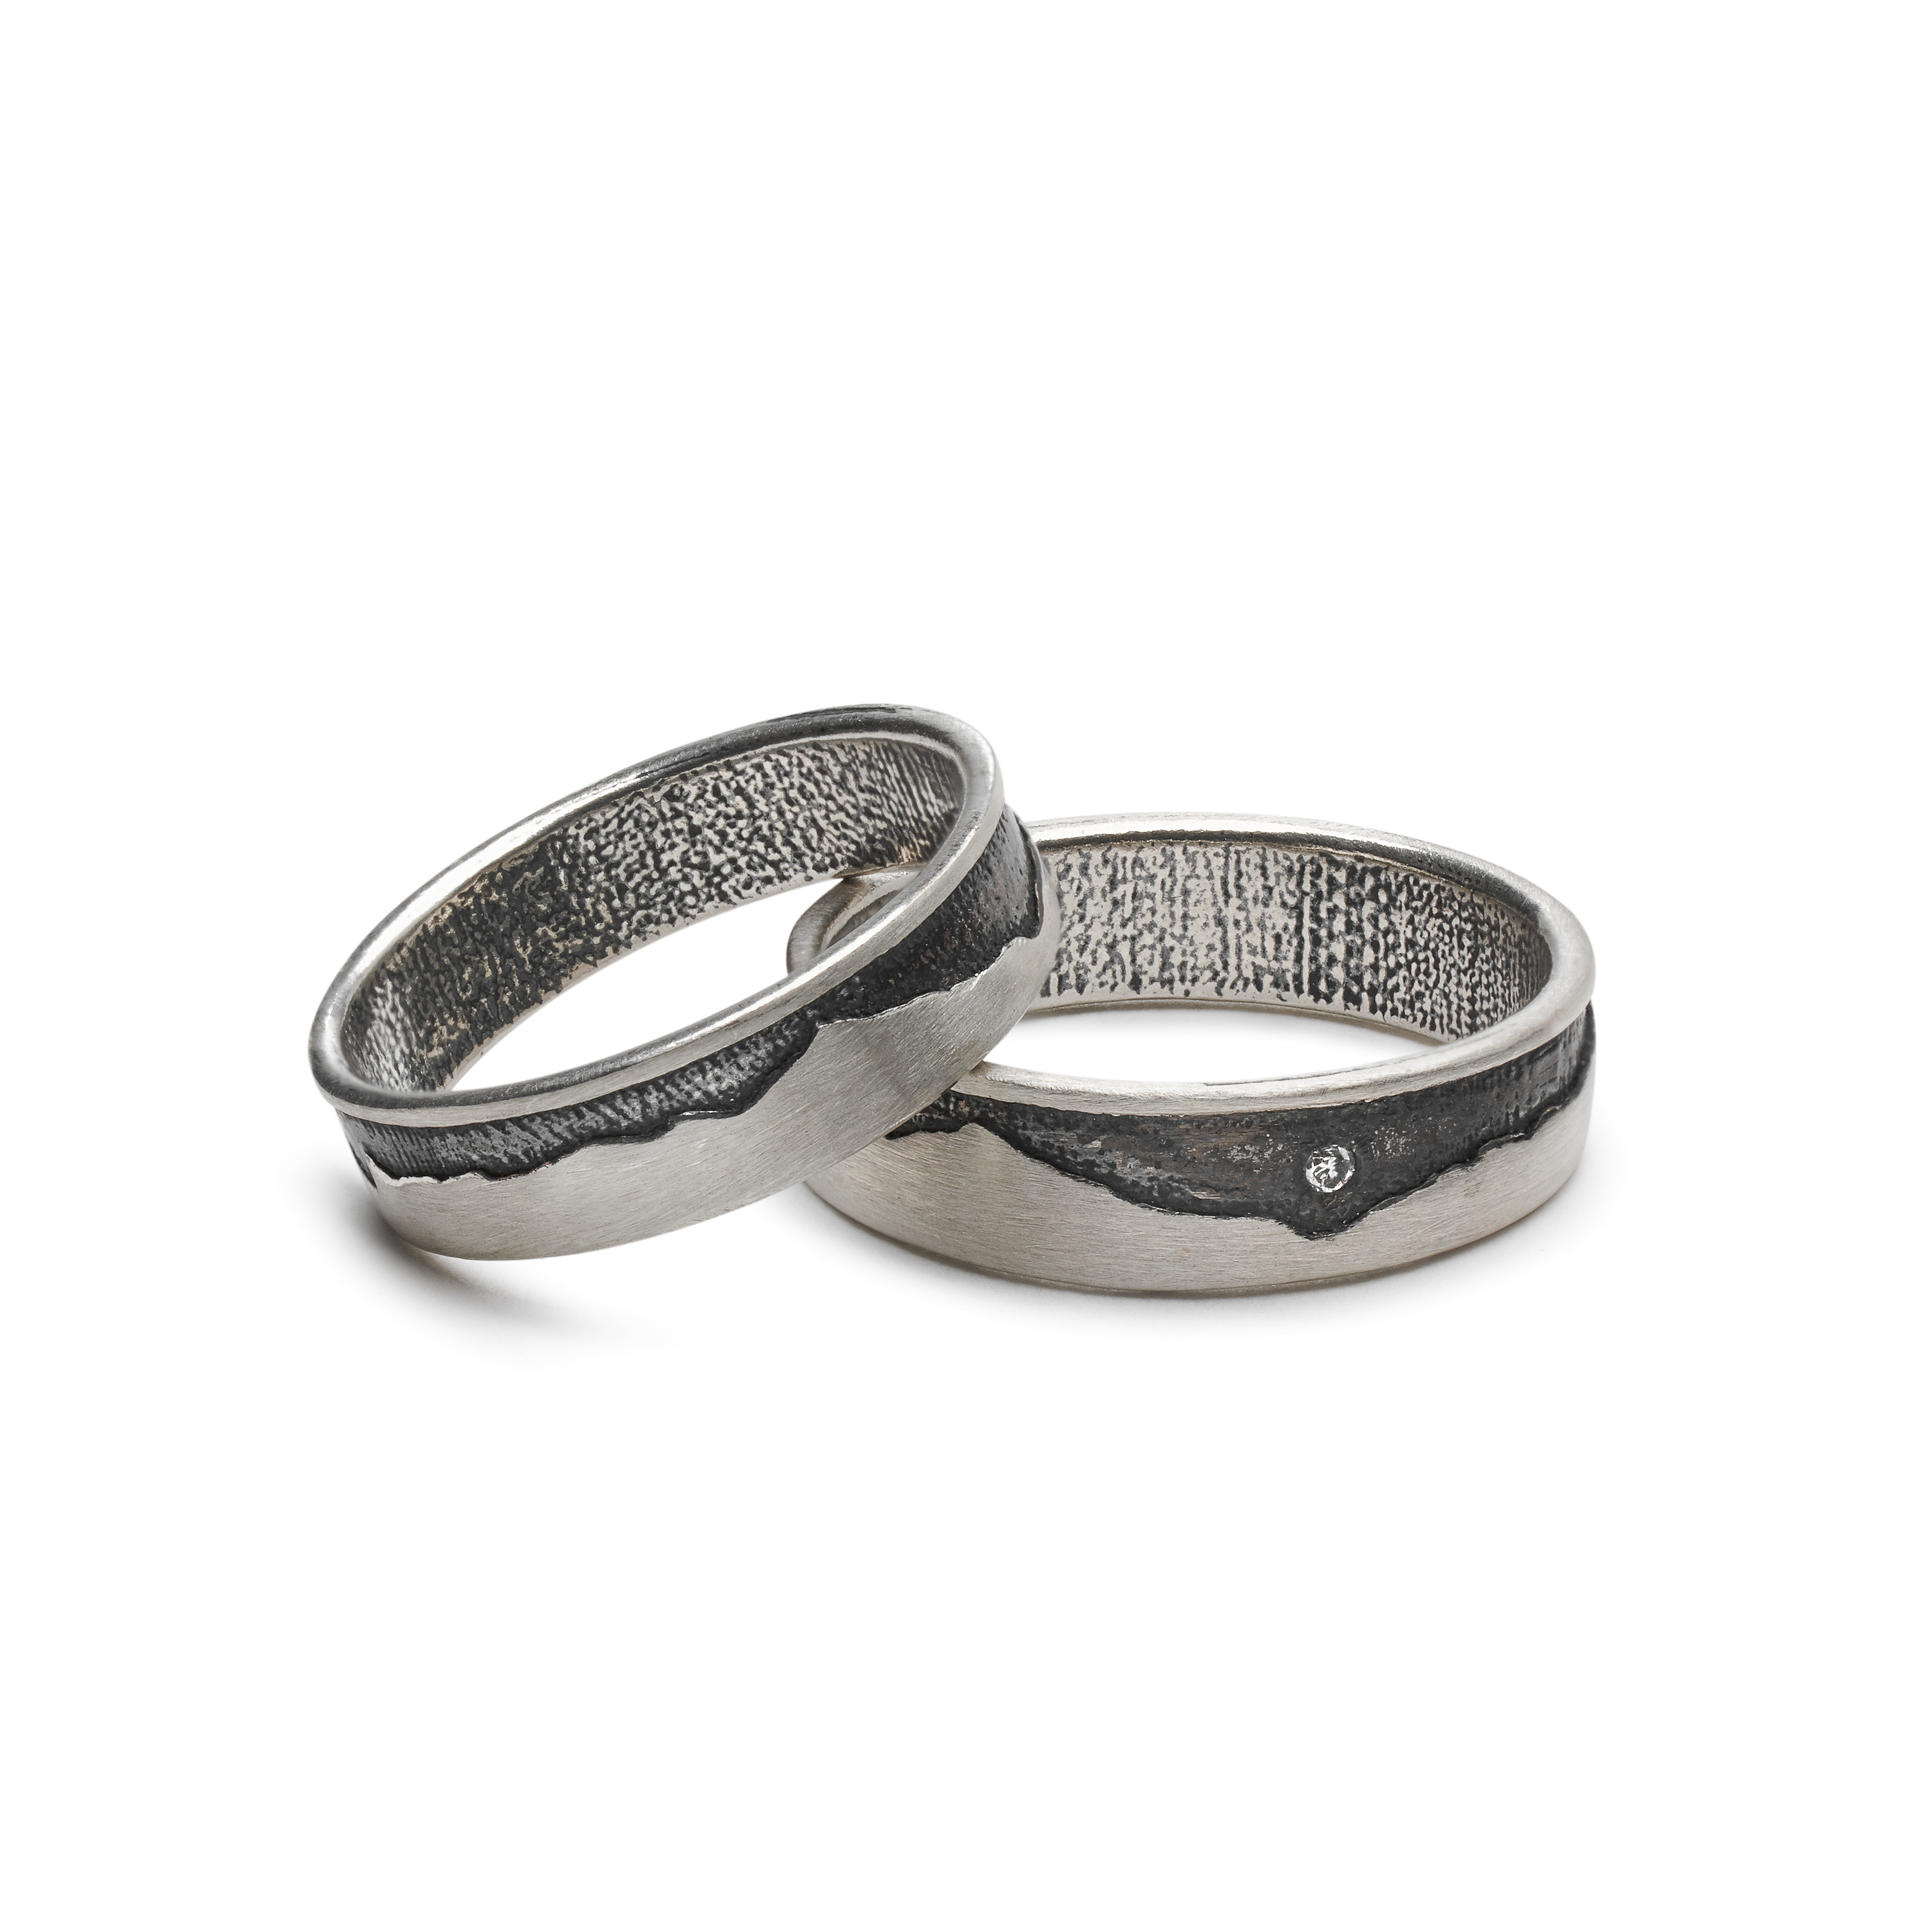 Custom Wedding Rings.Custom Wedding Rings Down Payment